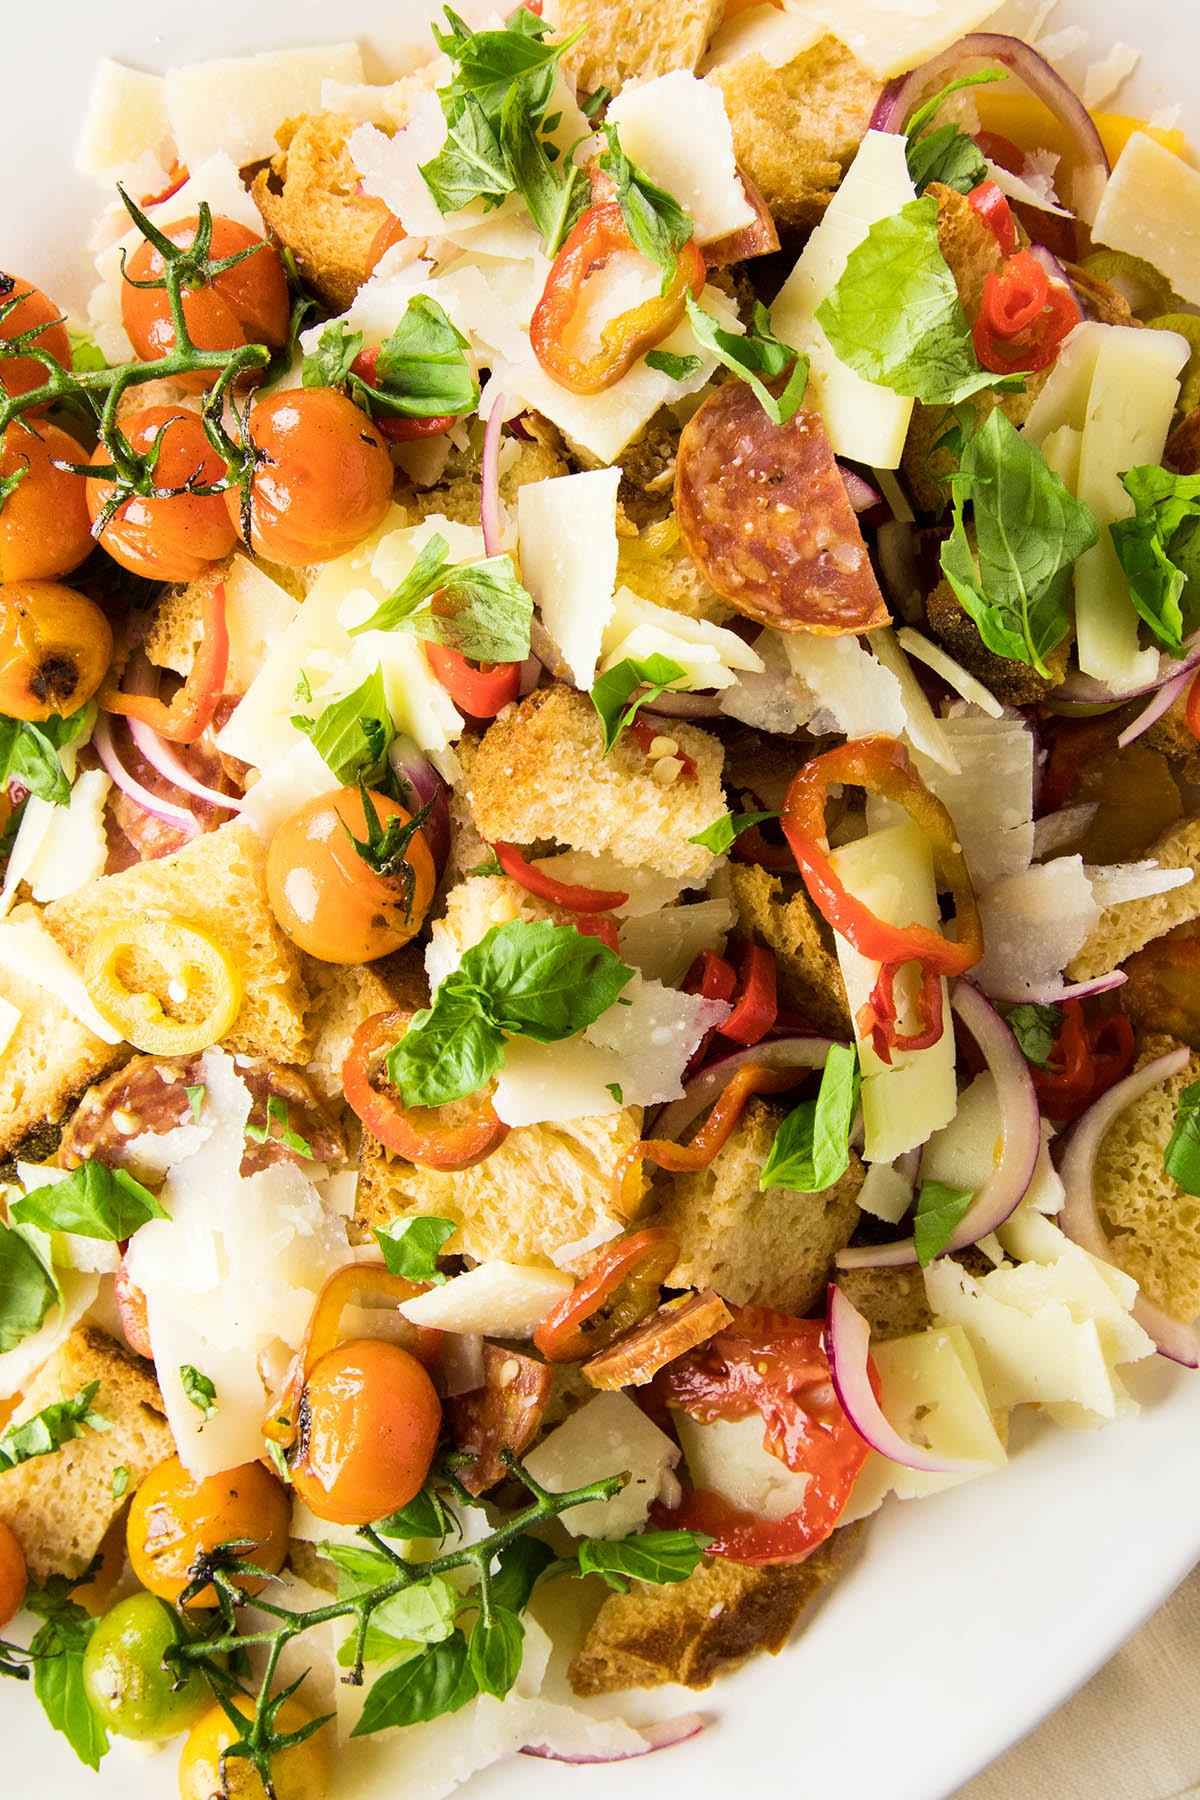 Panzanella Salad with Heirloom Tomatoes and Quick Pickled Peppers